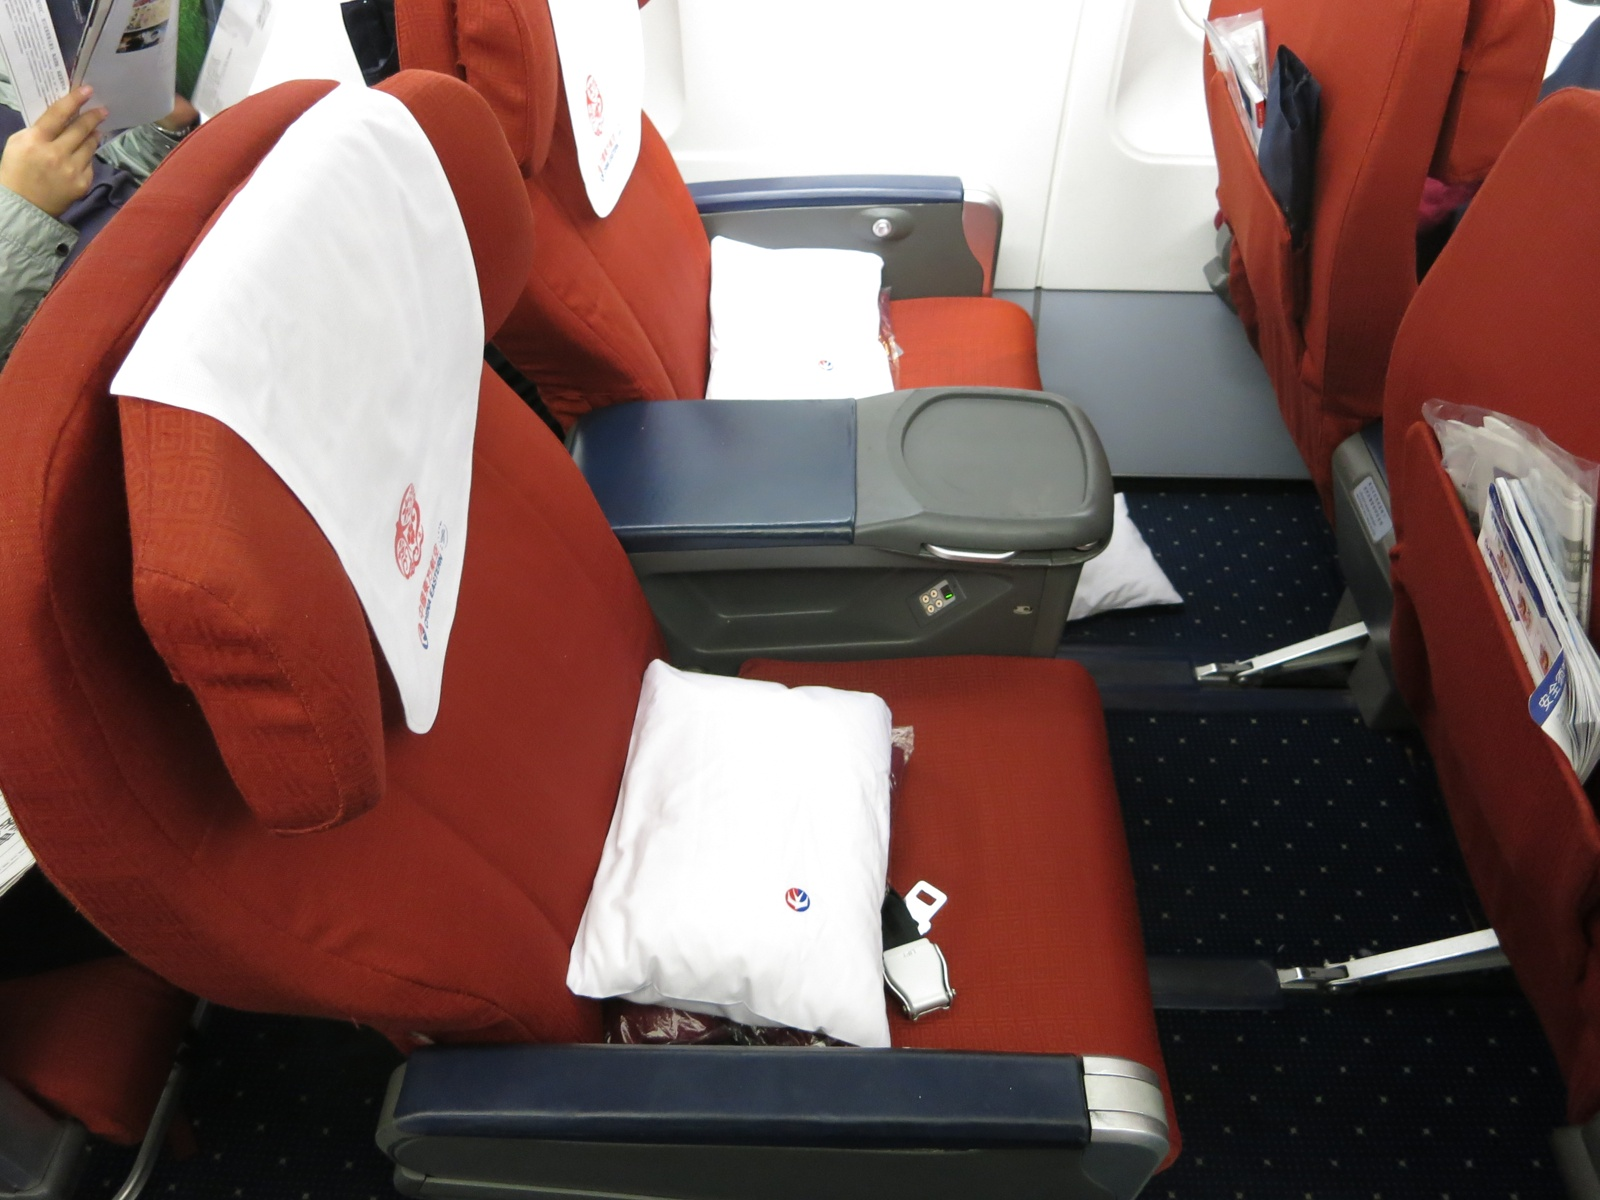 China Eastern First class PEK-DLC, 08.JPG